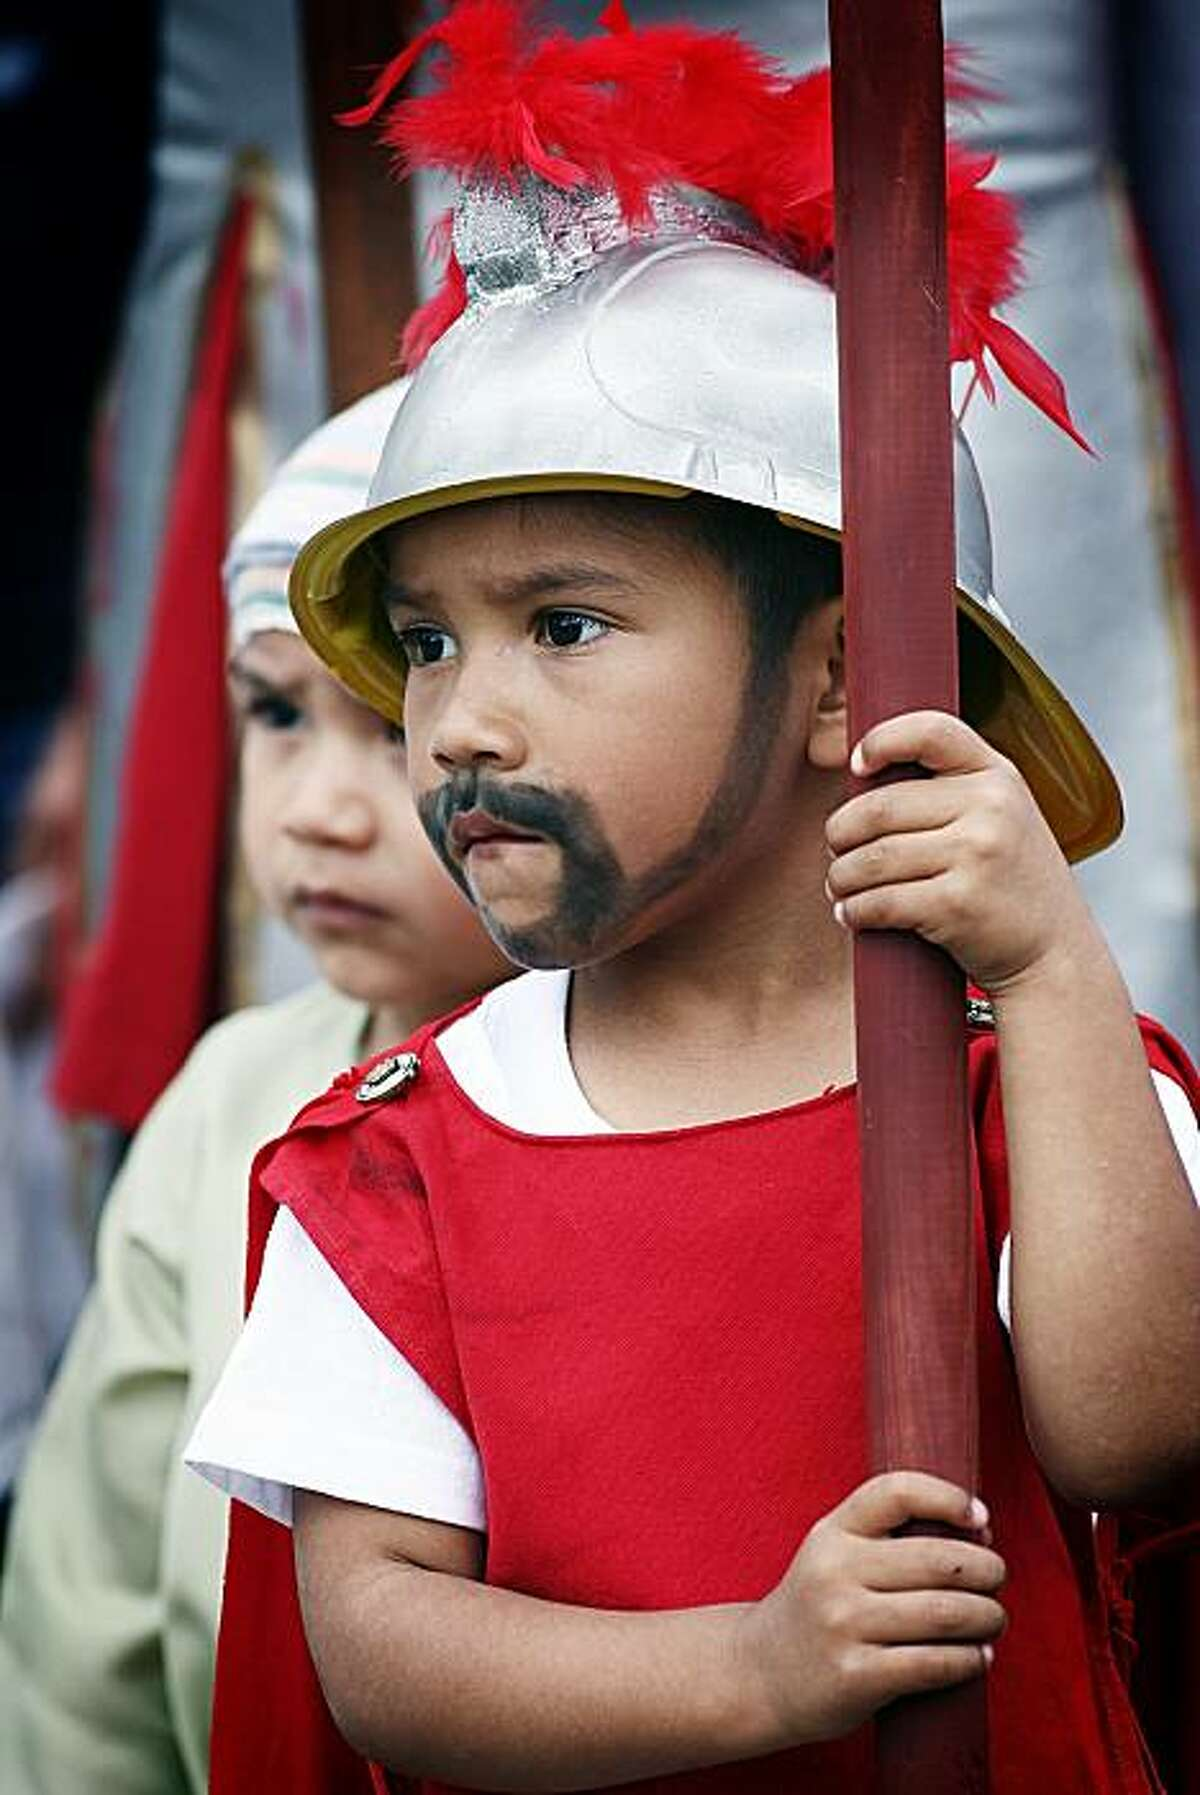 Three-year-old Gabriel Velazquez, with his face painted to depict a bearded Roman soldier, participates in a Passion play in Victoria, Texas for Good Friday, April 2, 2010. Santisima Trinidad's Church holds a Stations of the Cross every year on Good Friday and encourages the teens and kids of the parish to be involved in the production.